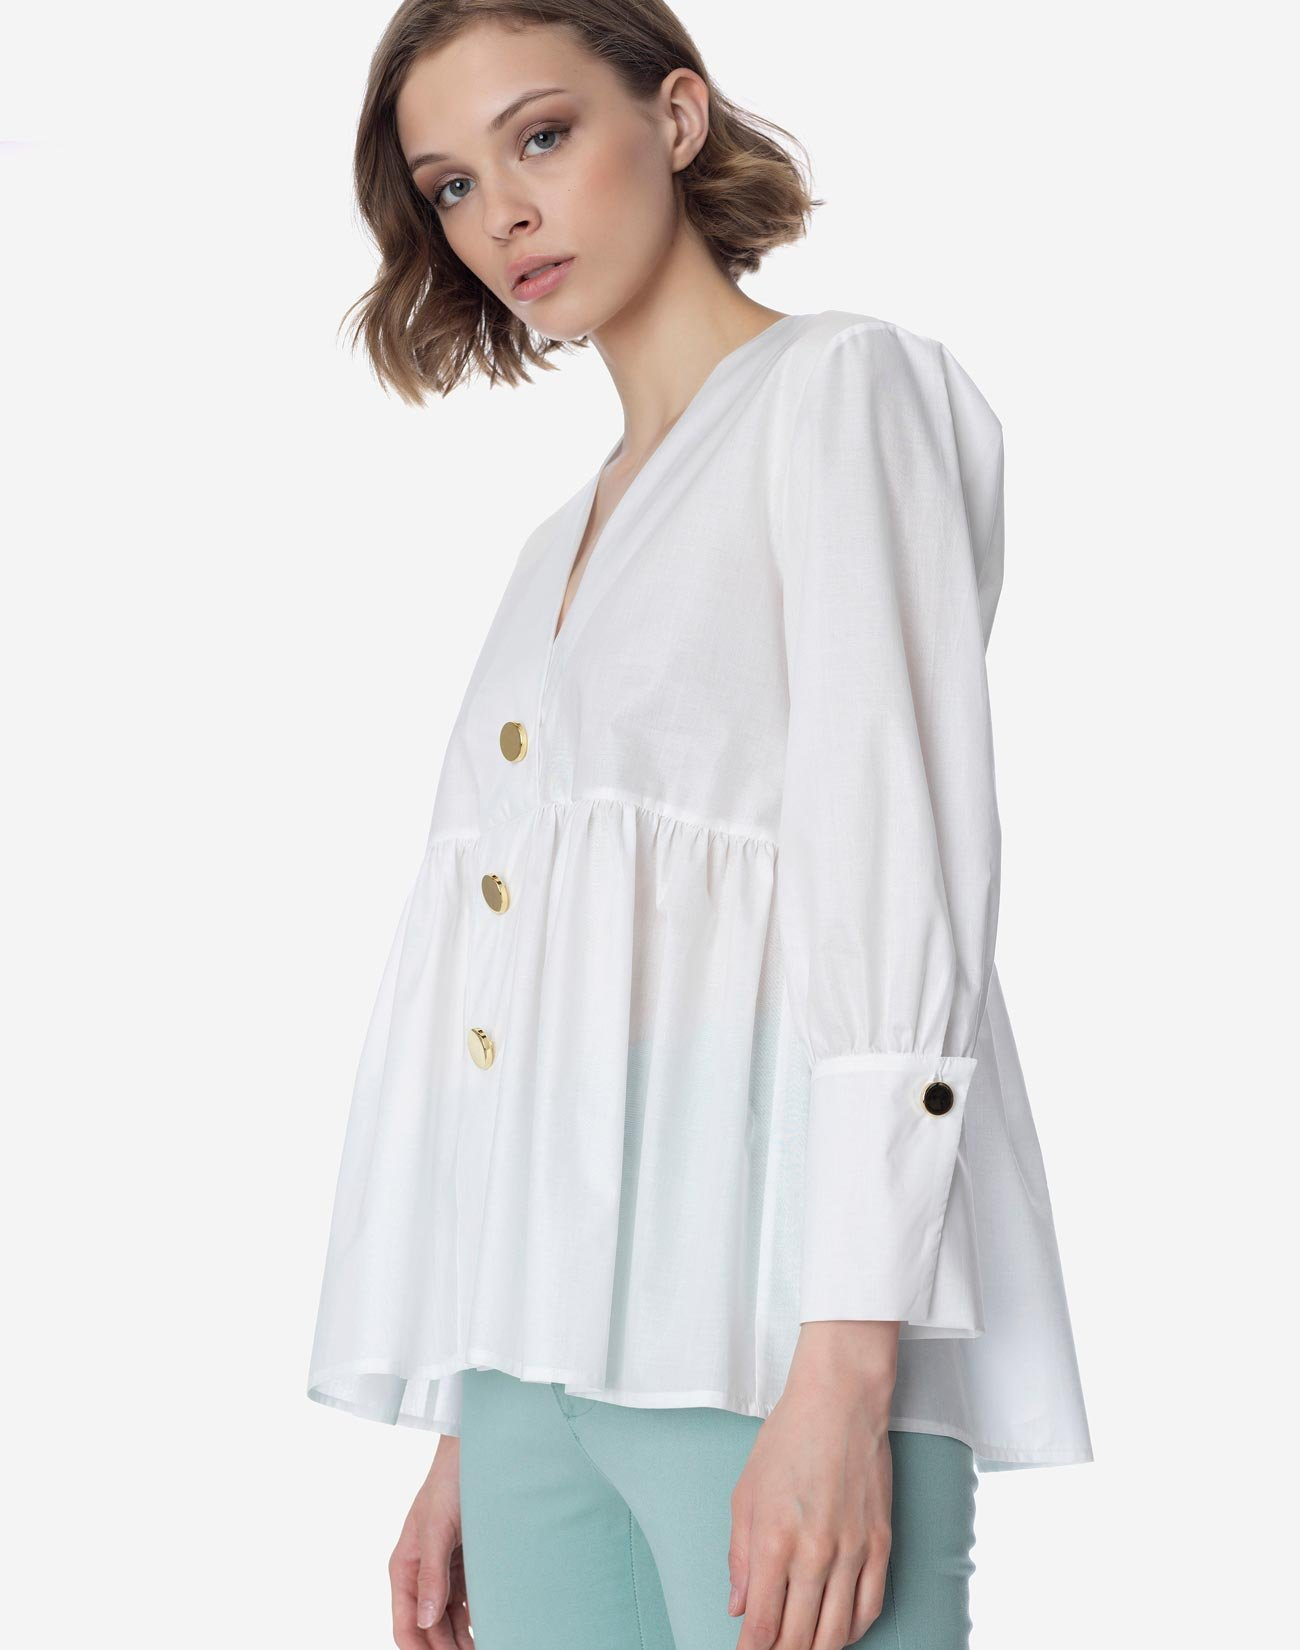 Top with gold buttons